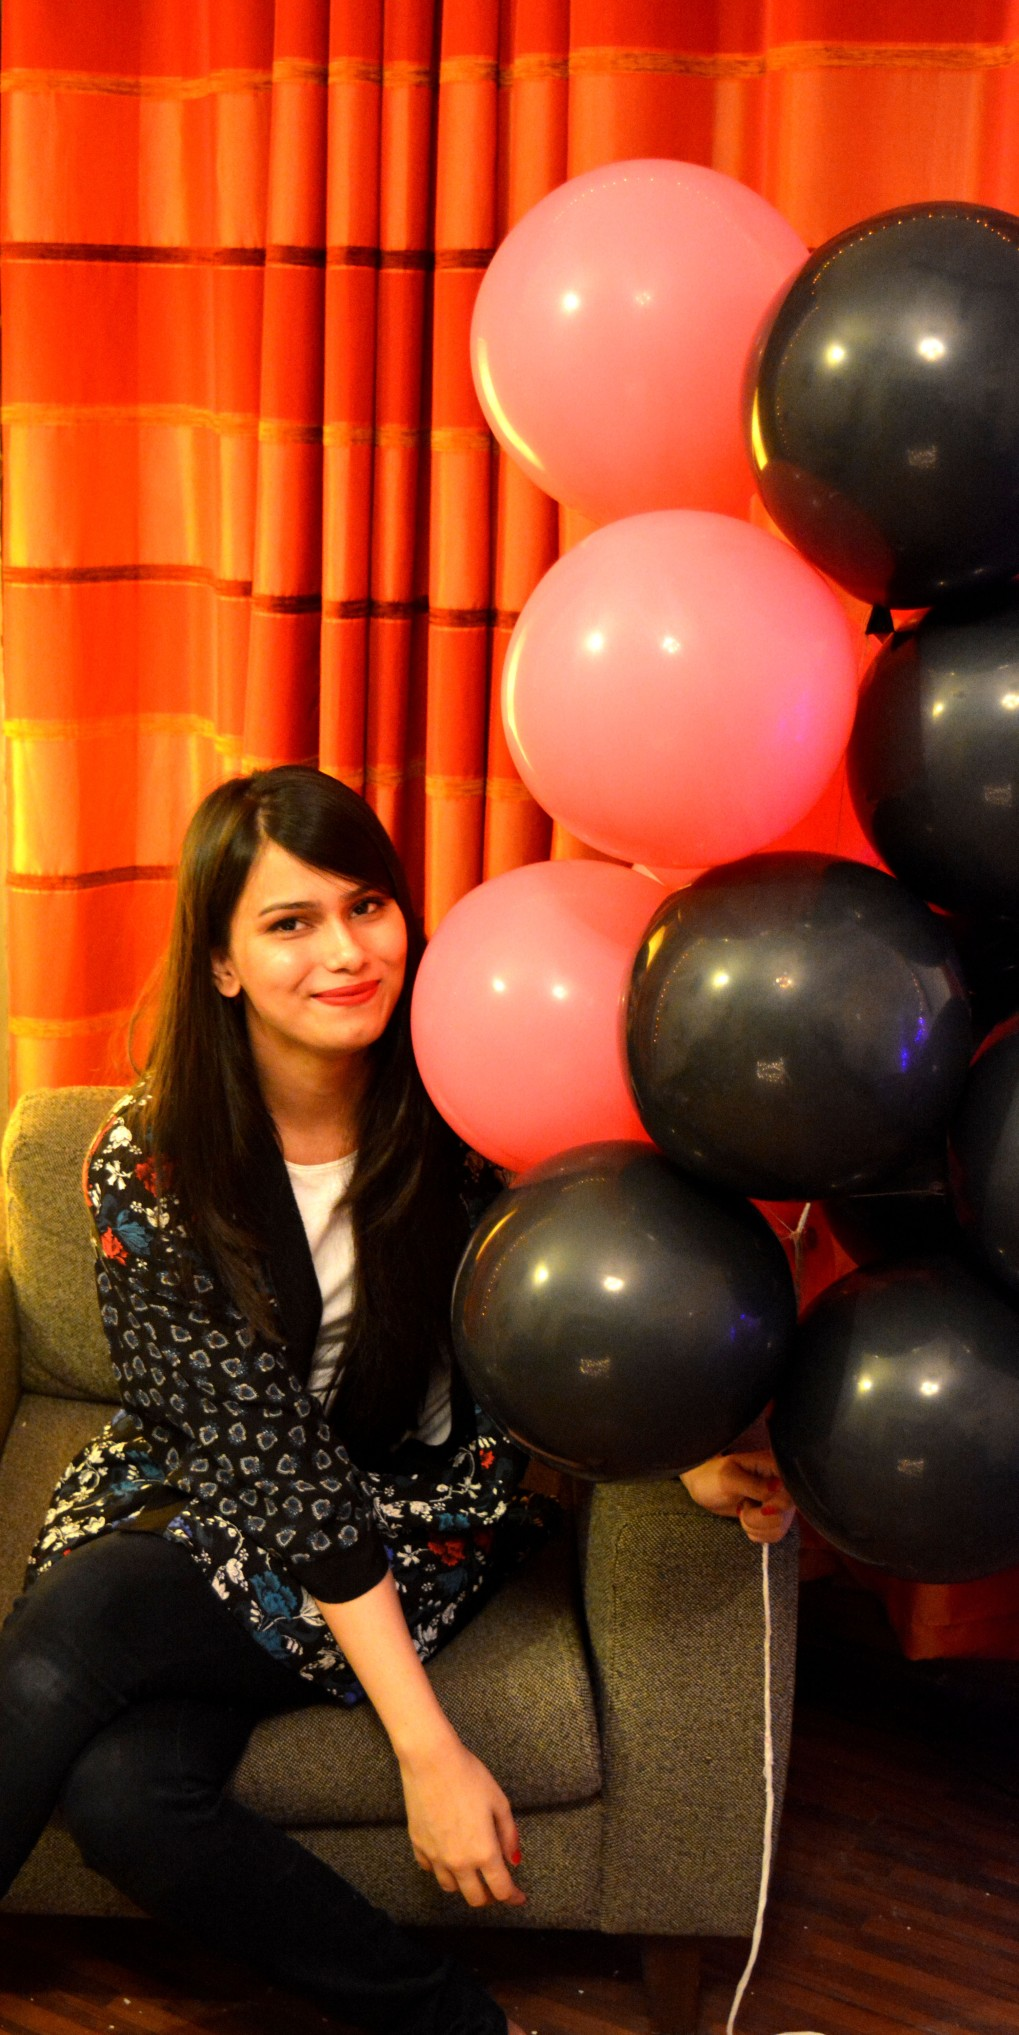 Chubby Cheeks +Birthday Balloons Bliss!